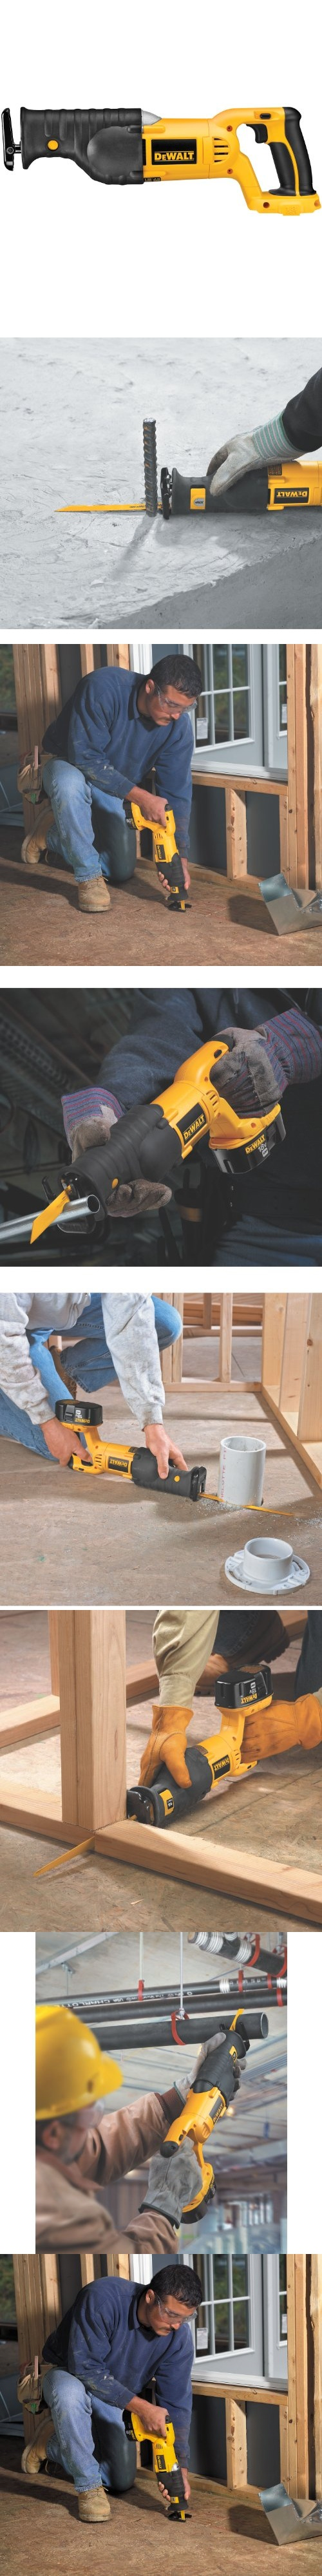 DEWALT Bare-Tool DC385B  18-Volt Cordless Reciprocating Saw - The DeWalt DC385 is a 18V heavy-duty cordless reciprocating saw. The 18v cordless reciprocating saw provides 1 stroke length and 2900 SPM for fast cutting. Its keyless blade clamp allows for changing ... - Reciprocating Saws - Tools & Hardware - Too low to display